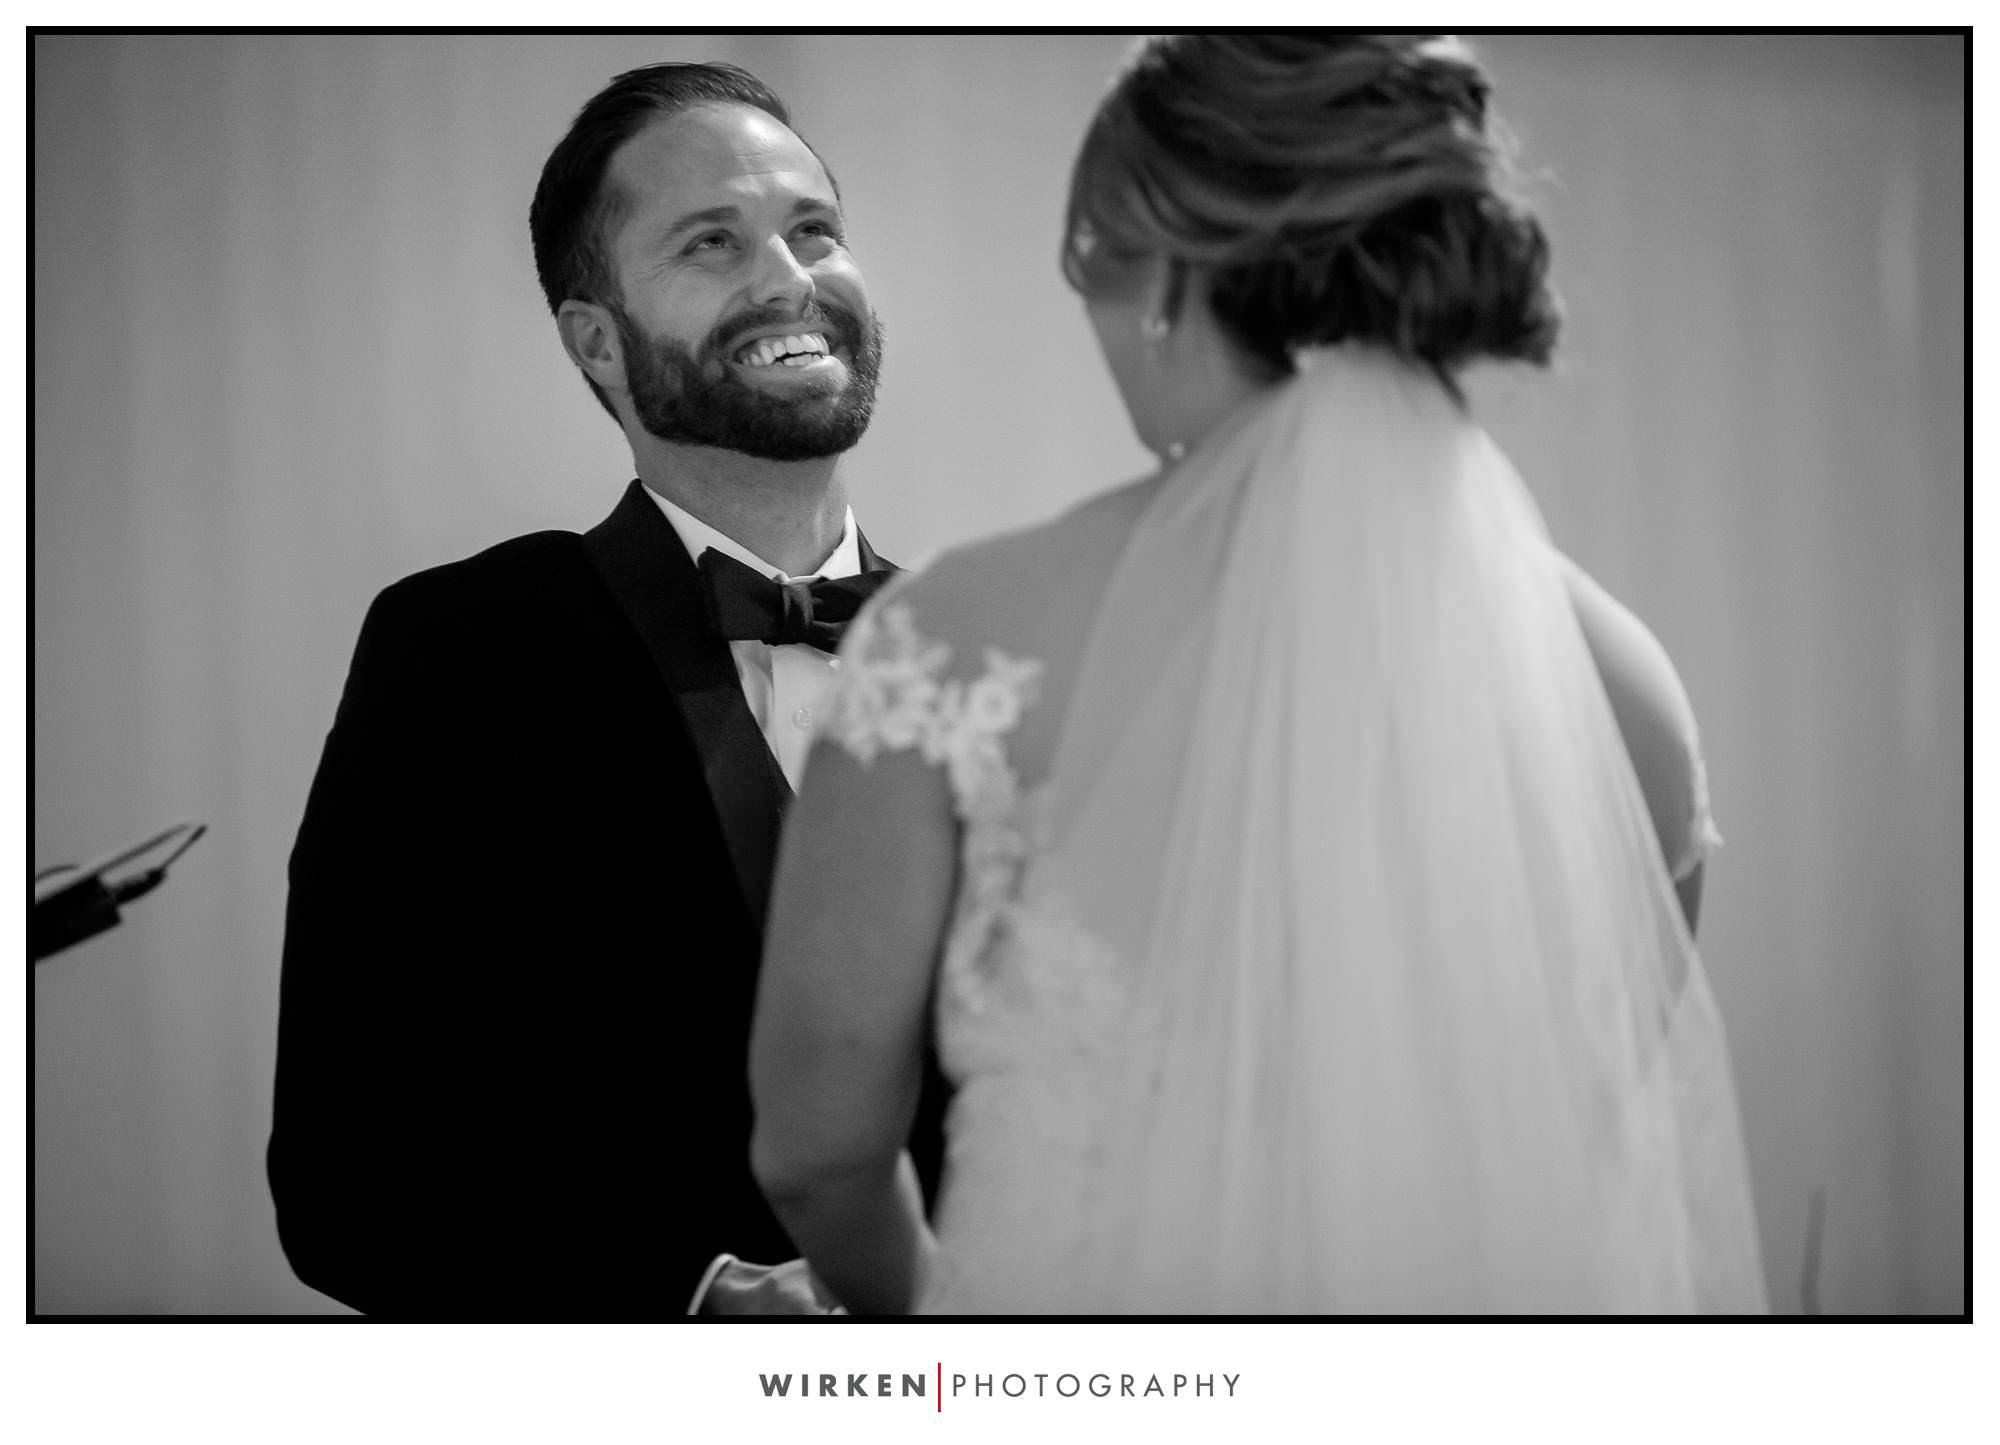 Ryan laughs during their wedding ceremony at the Gallery Event Center